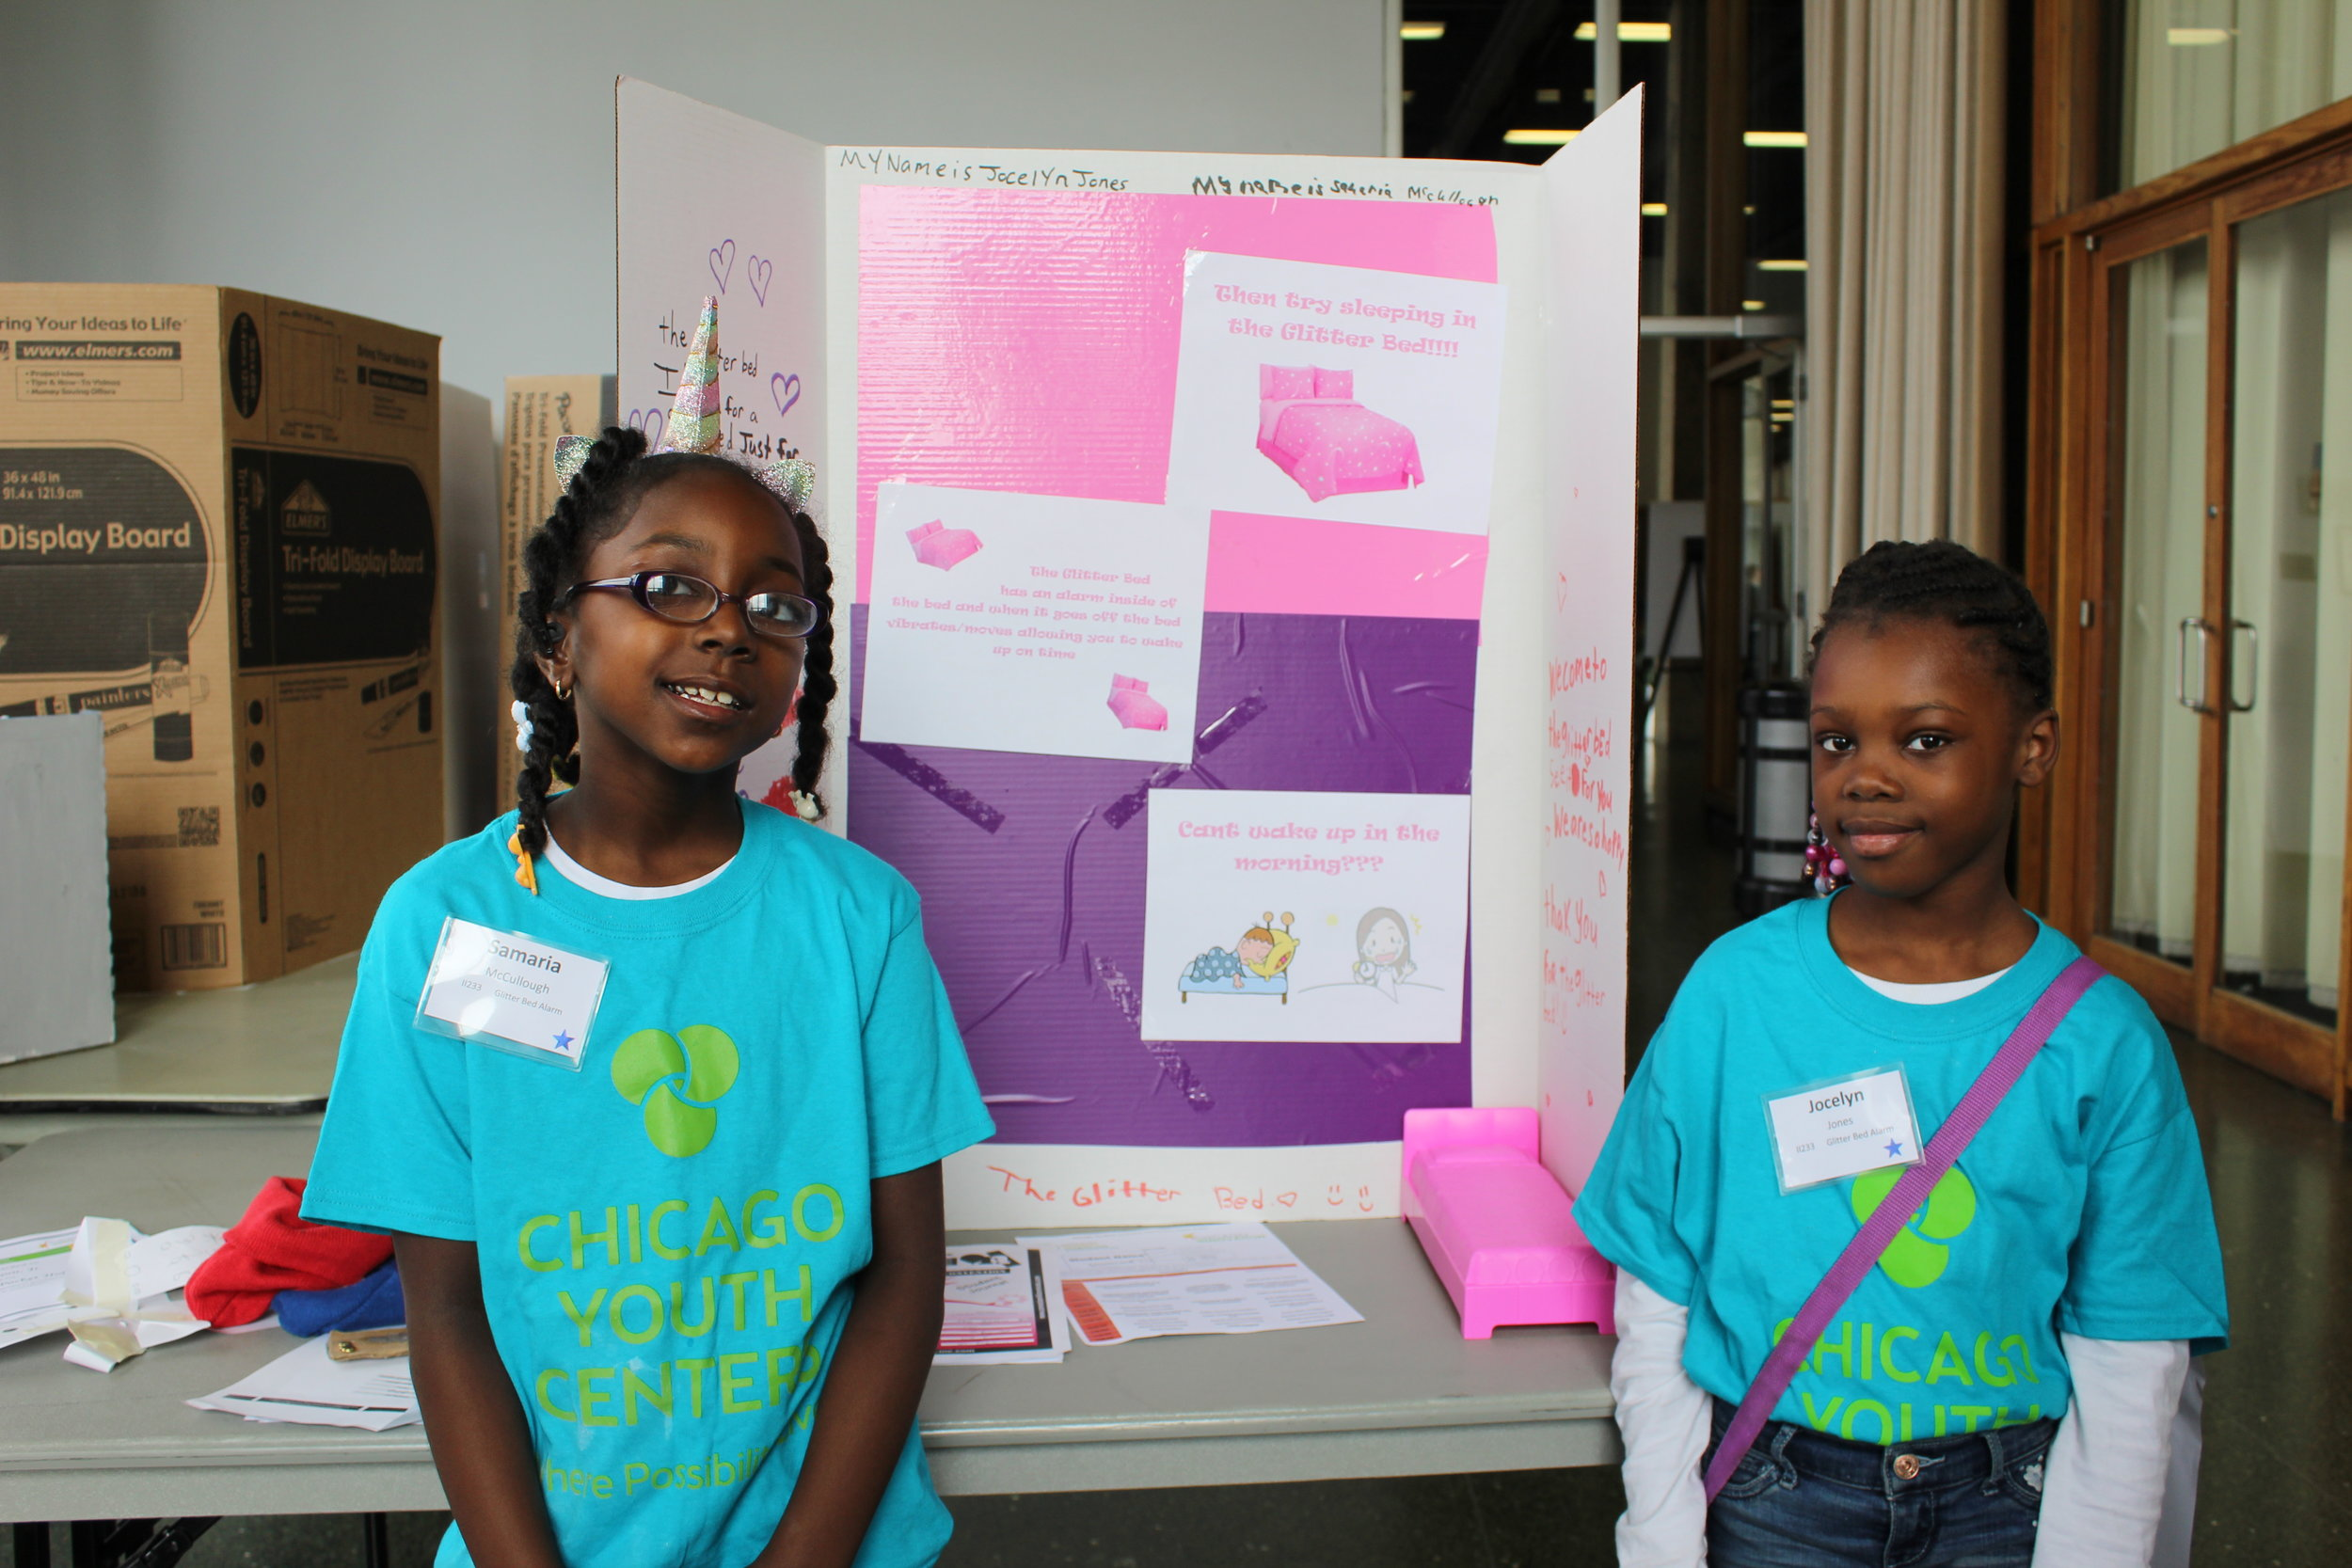 Samaria and jocelyn present their invention at the event.